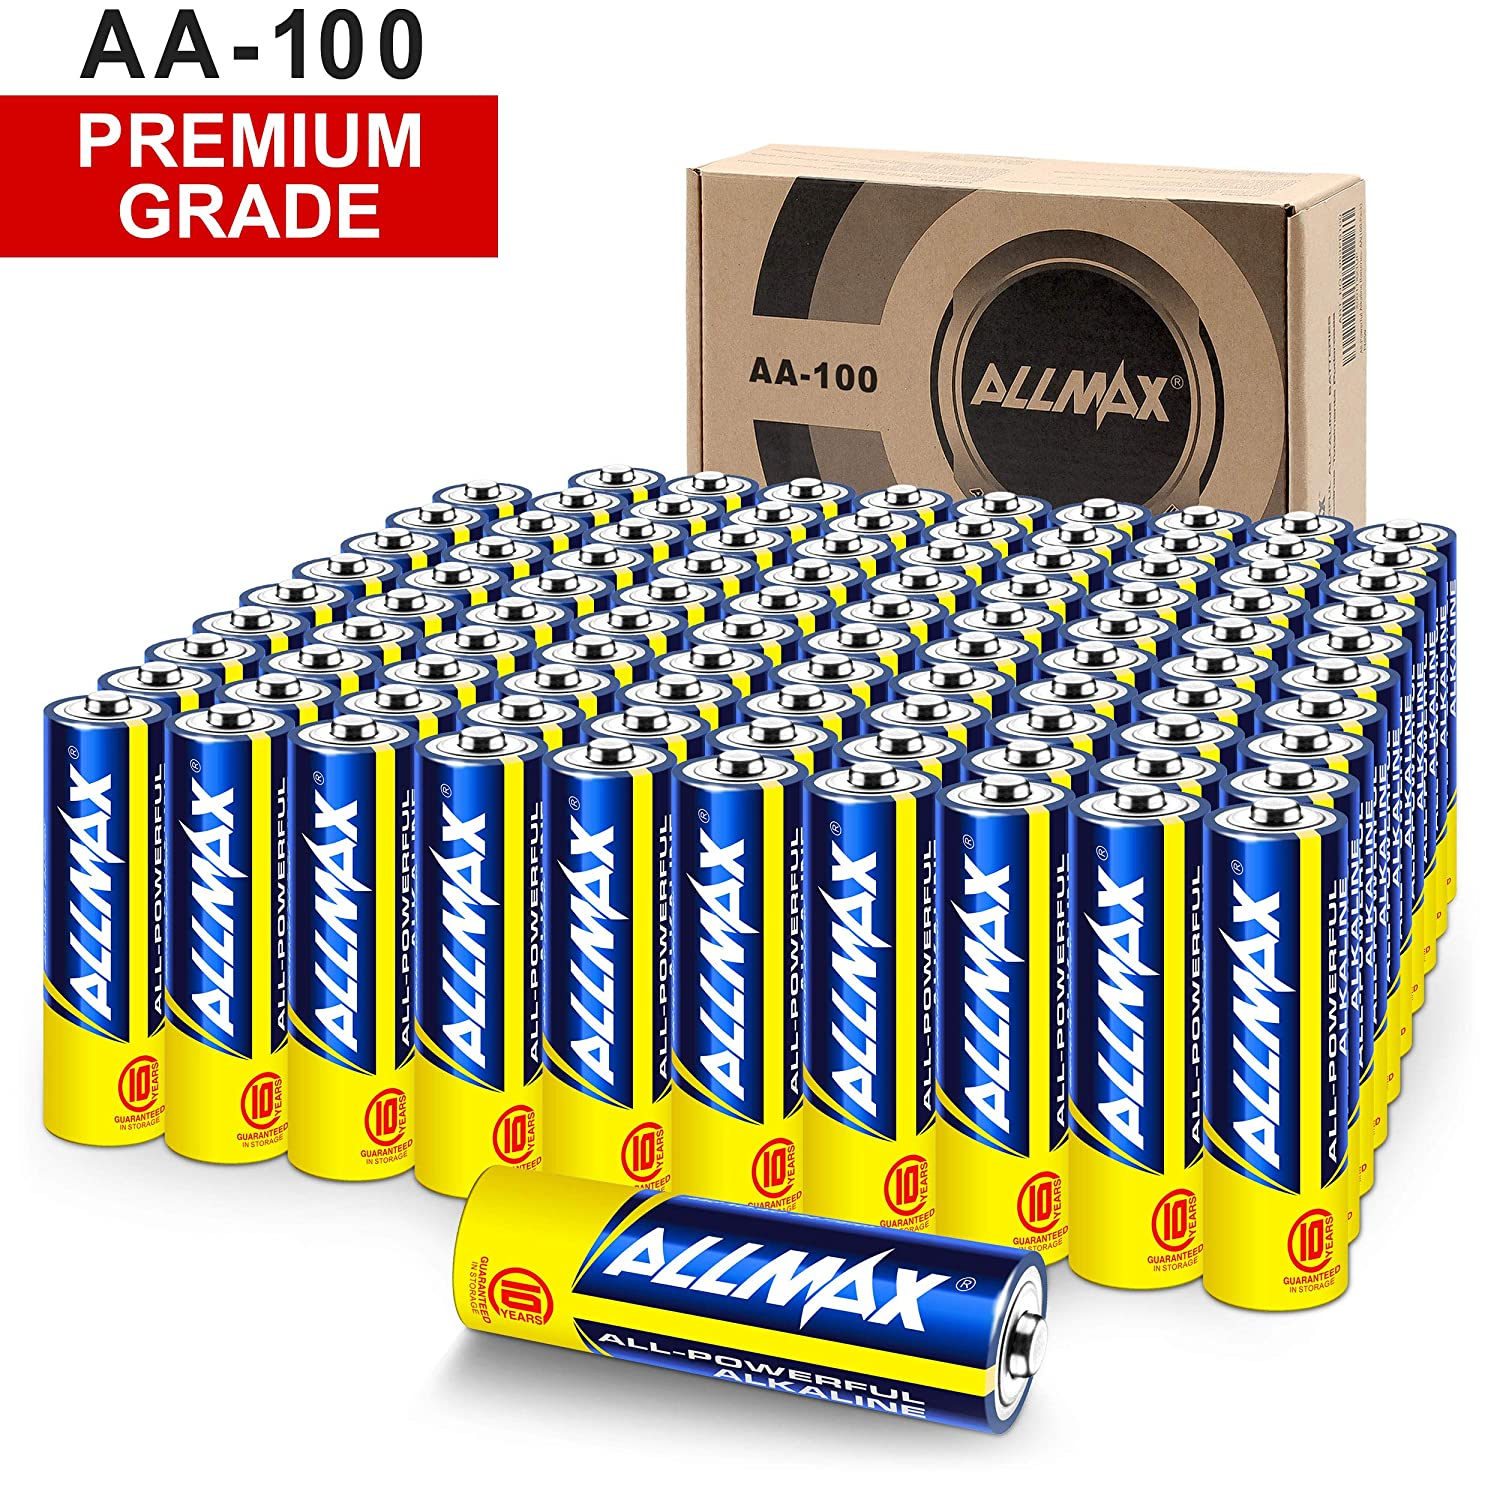 ALLMAX All-Powerful Alkaline Batteries - AA (100-Pack) - Premium Grade, Ultra Long-Lasting and Leak Proof with EnergyCircle Technology (1.5 Volt)